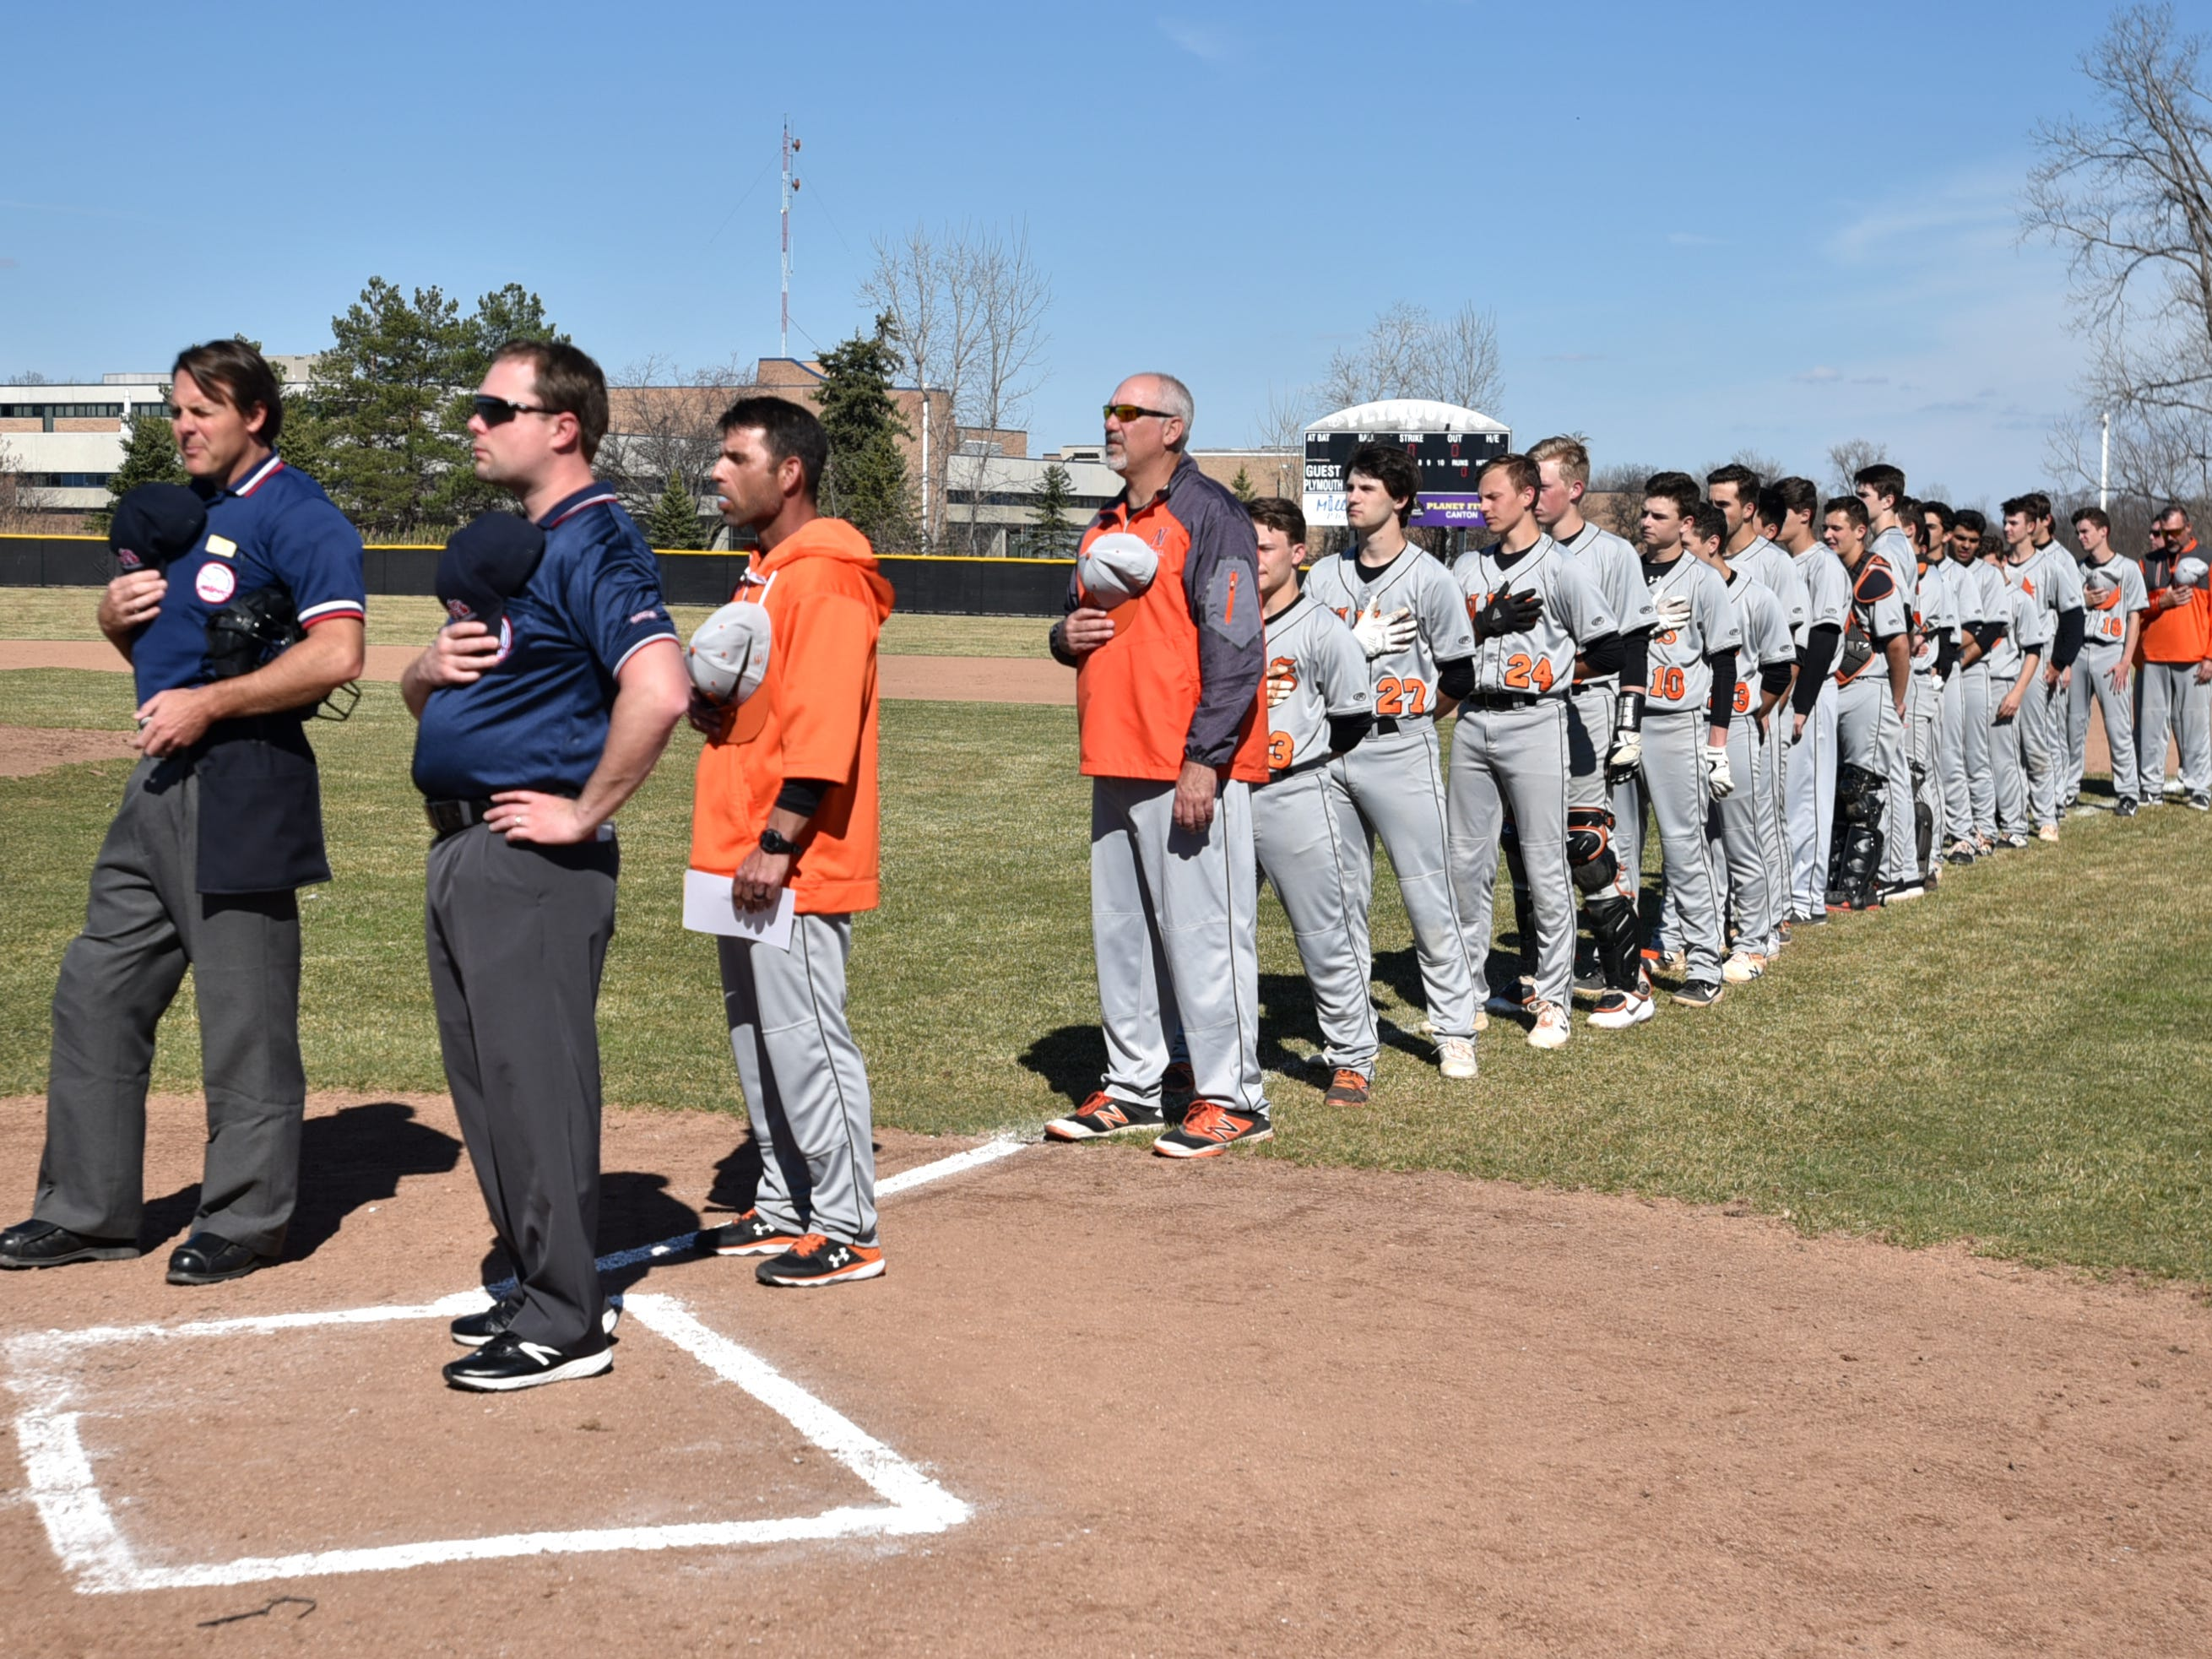 The Northville Mustangs, coaches and the game's umpires stand at attention for te playing of the National Anthem on April 8.